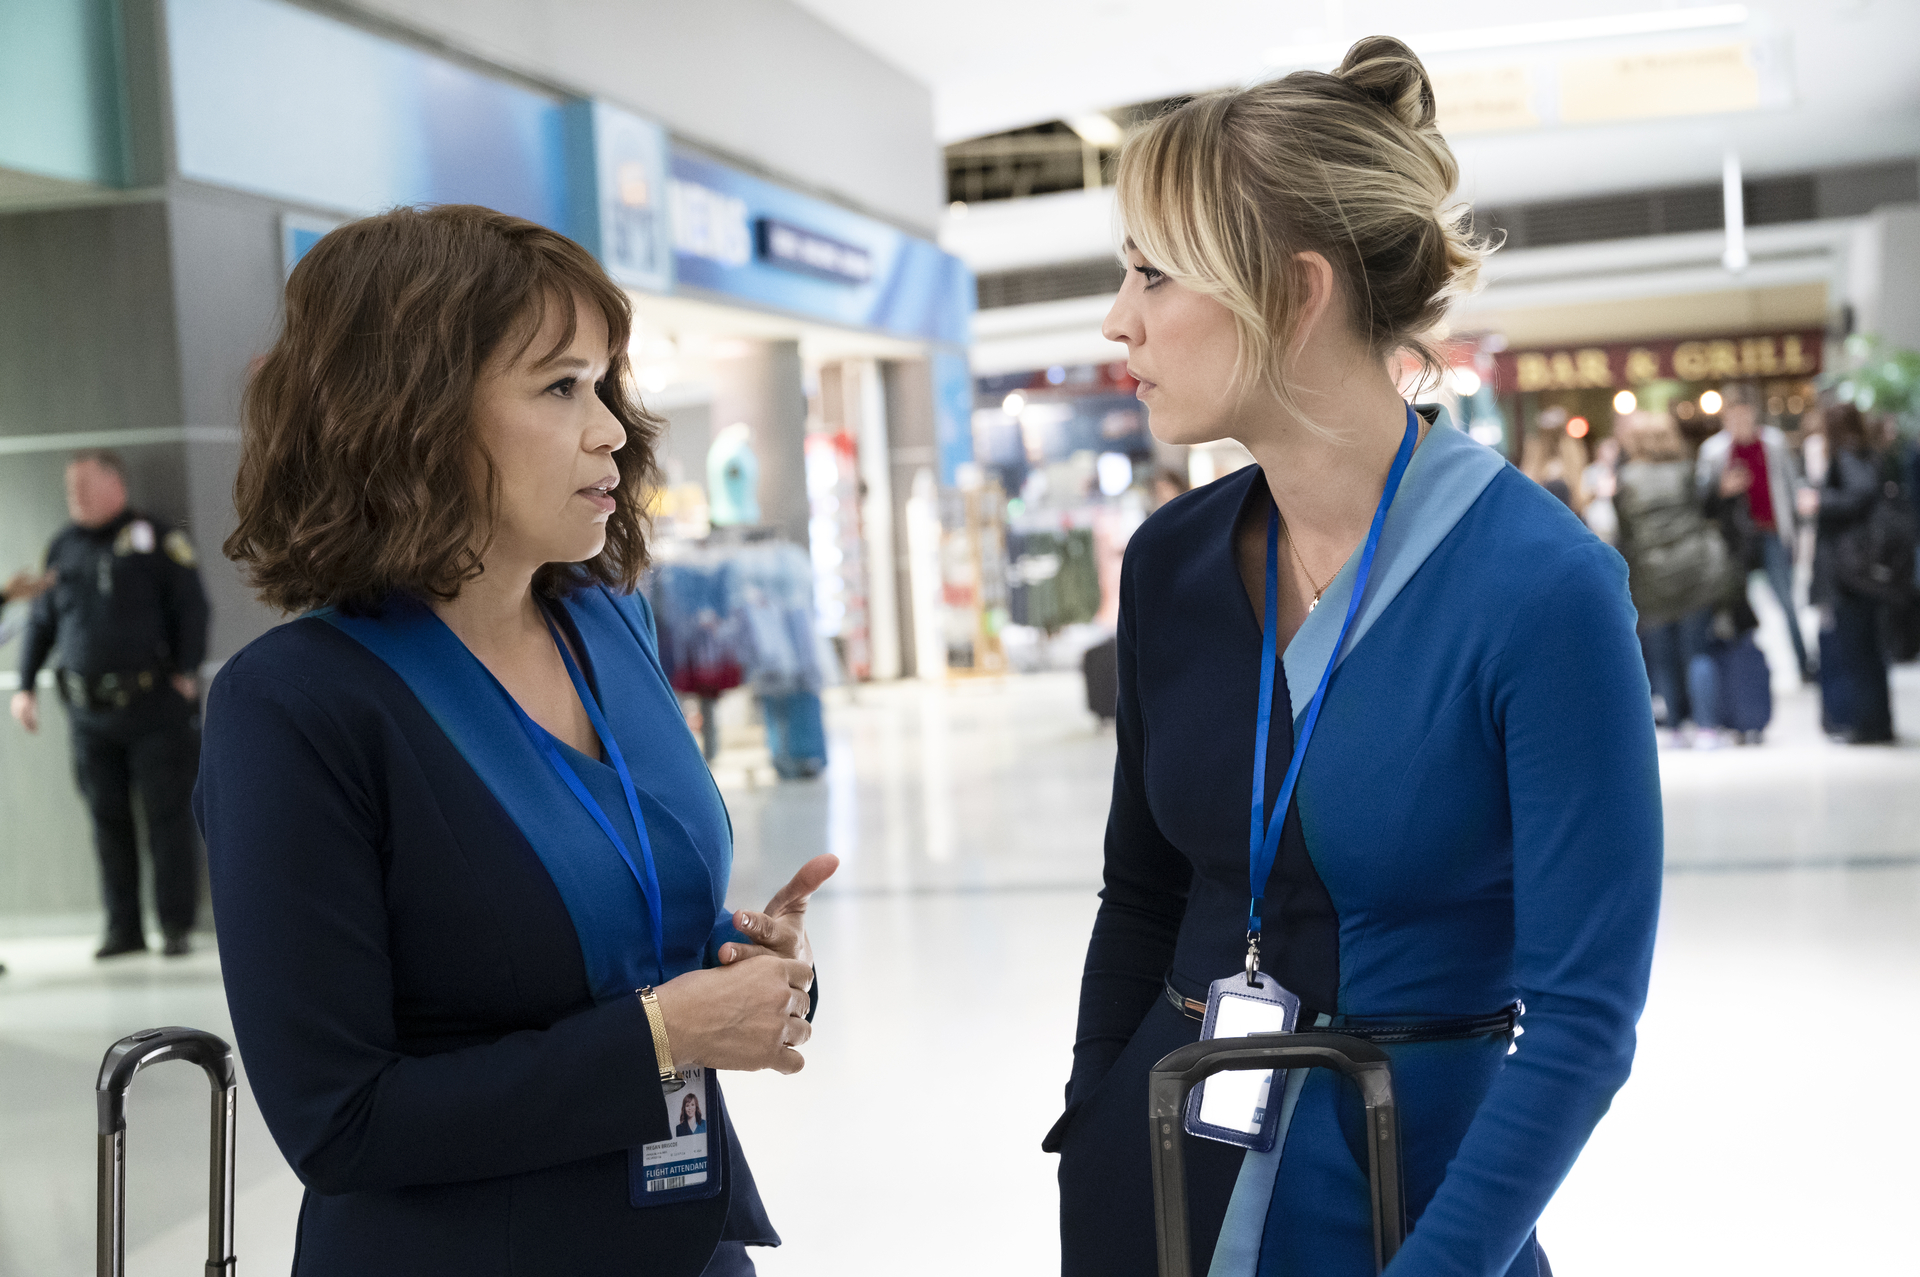 Rosie Perez and Kaley Cuoco in 'The Flight Attendant'